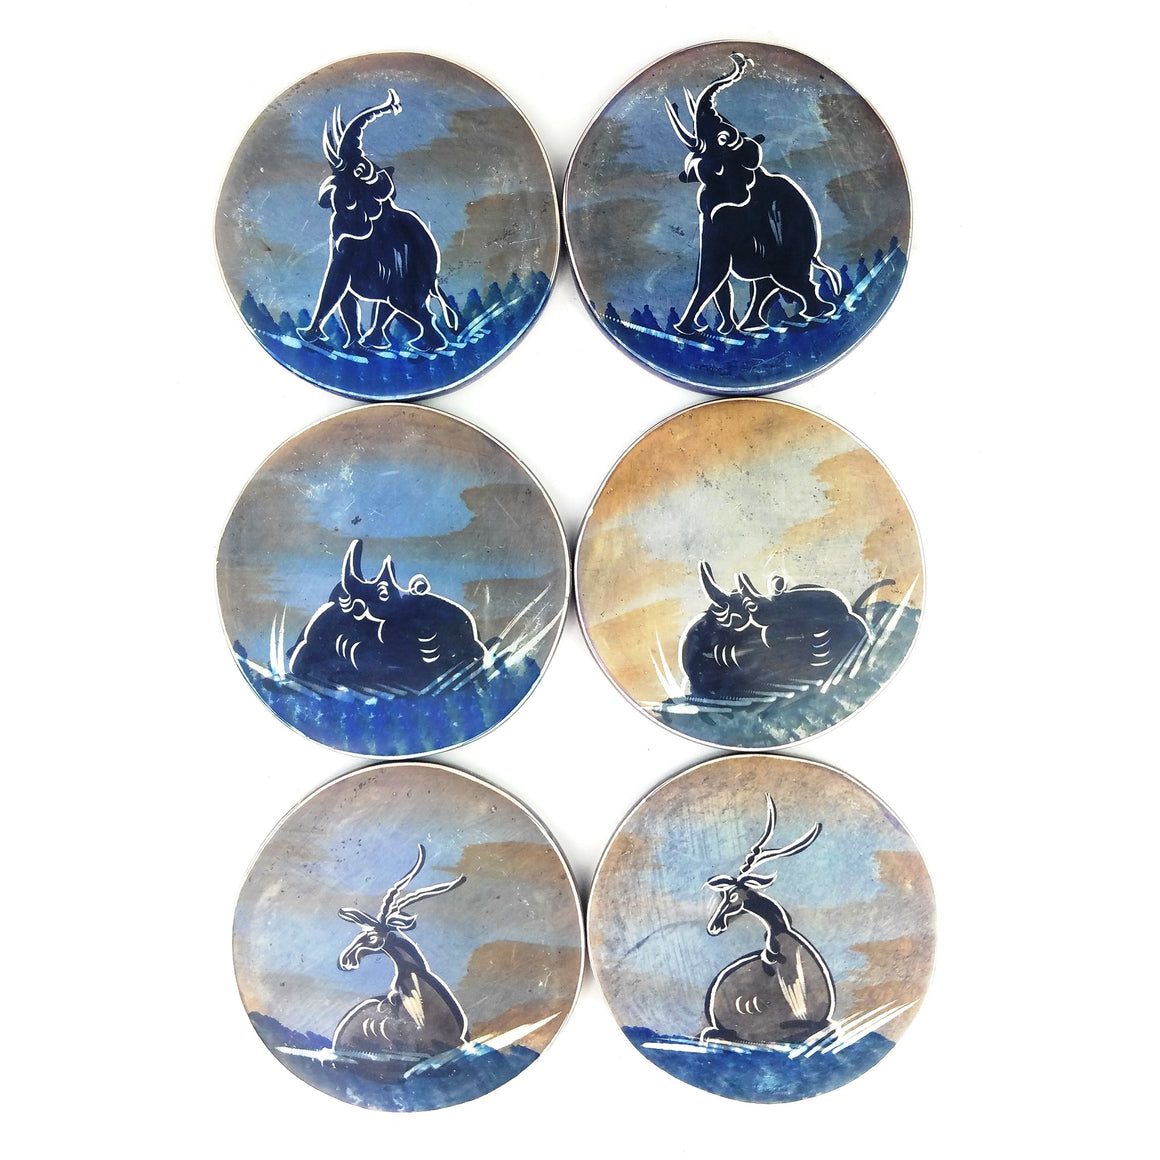 Coaster Set Safari Animals - 6 Piece Set